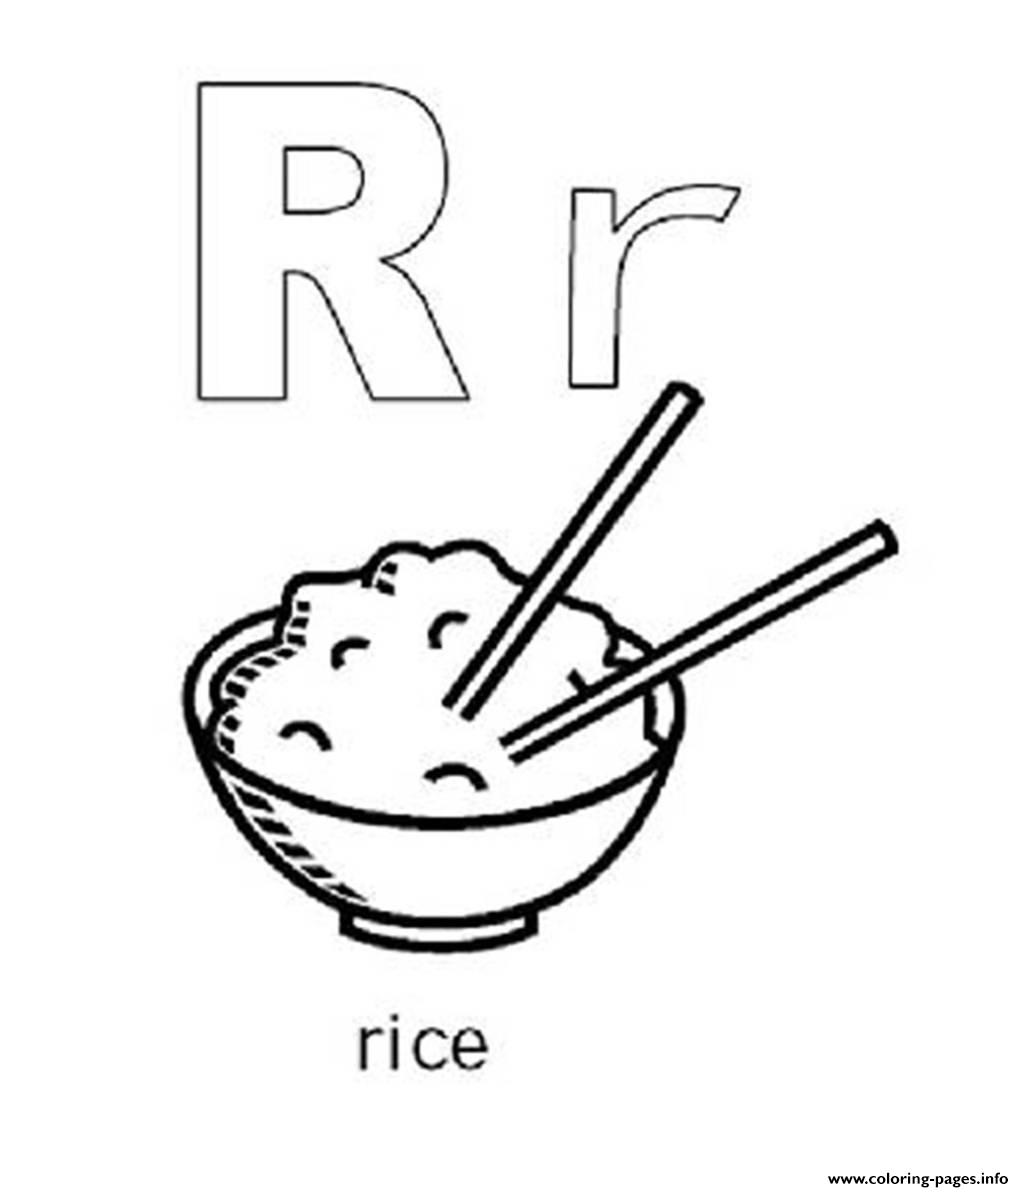 Rice Free Alphabet S4eea Coloring Pages Printable